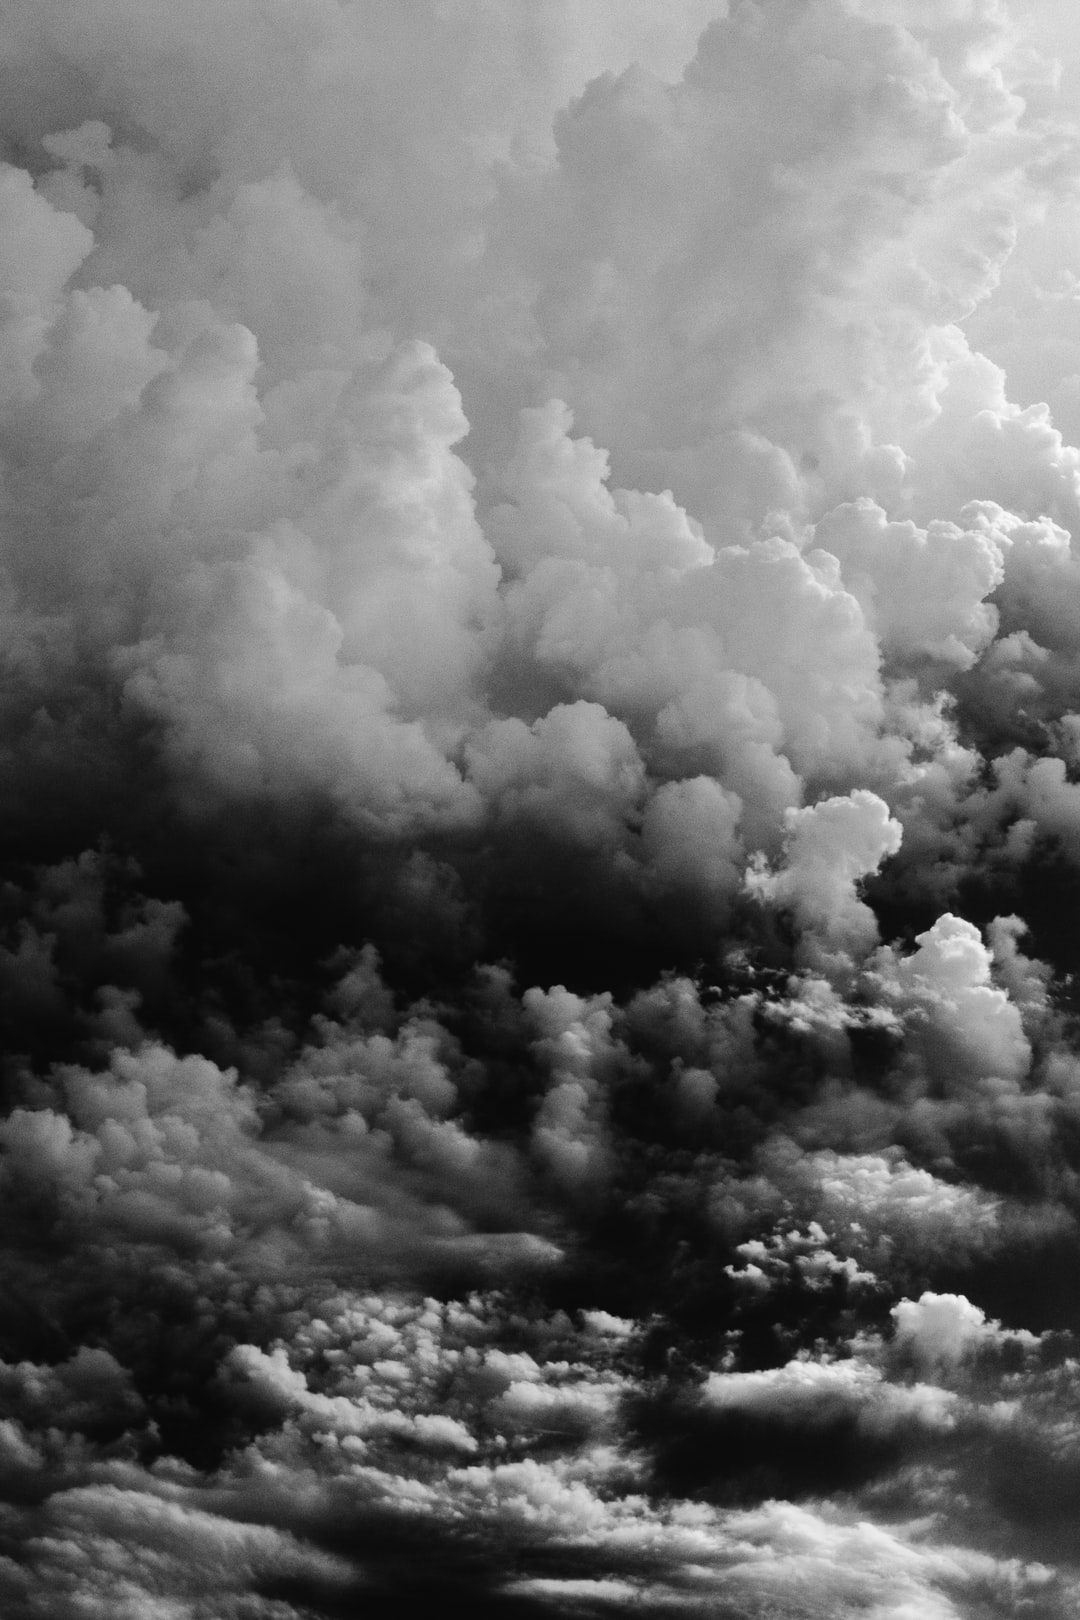 clouds hd nature wallpaper unsplash day wallpapers stormrider relax intuition bg cumulus done barrett tom games anime color background sky